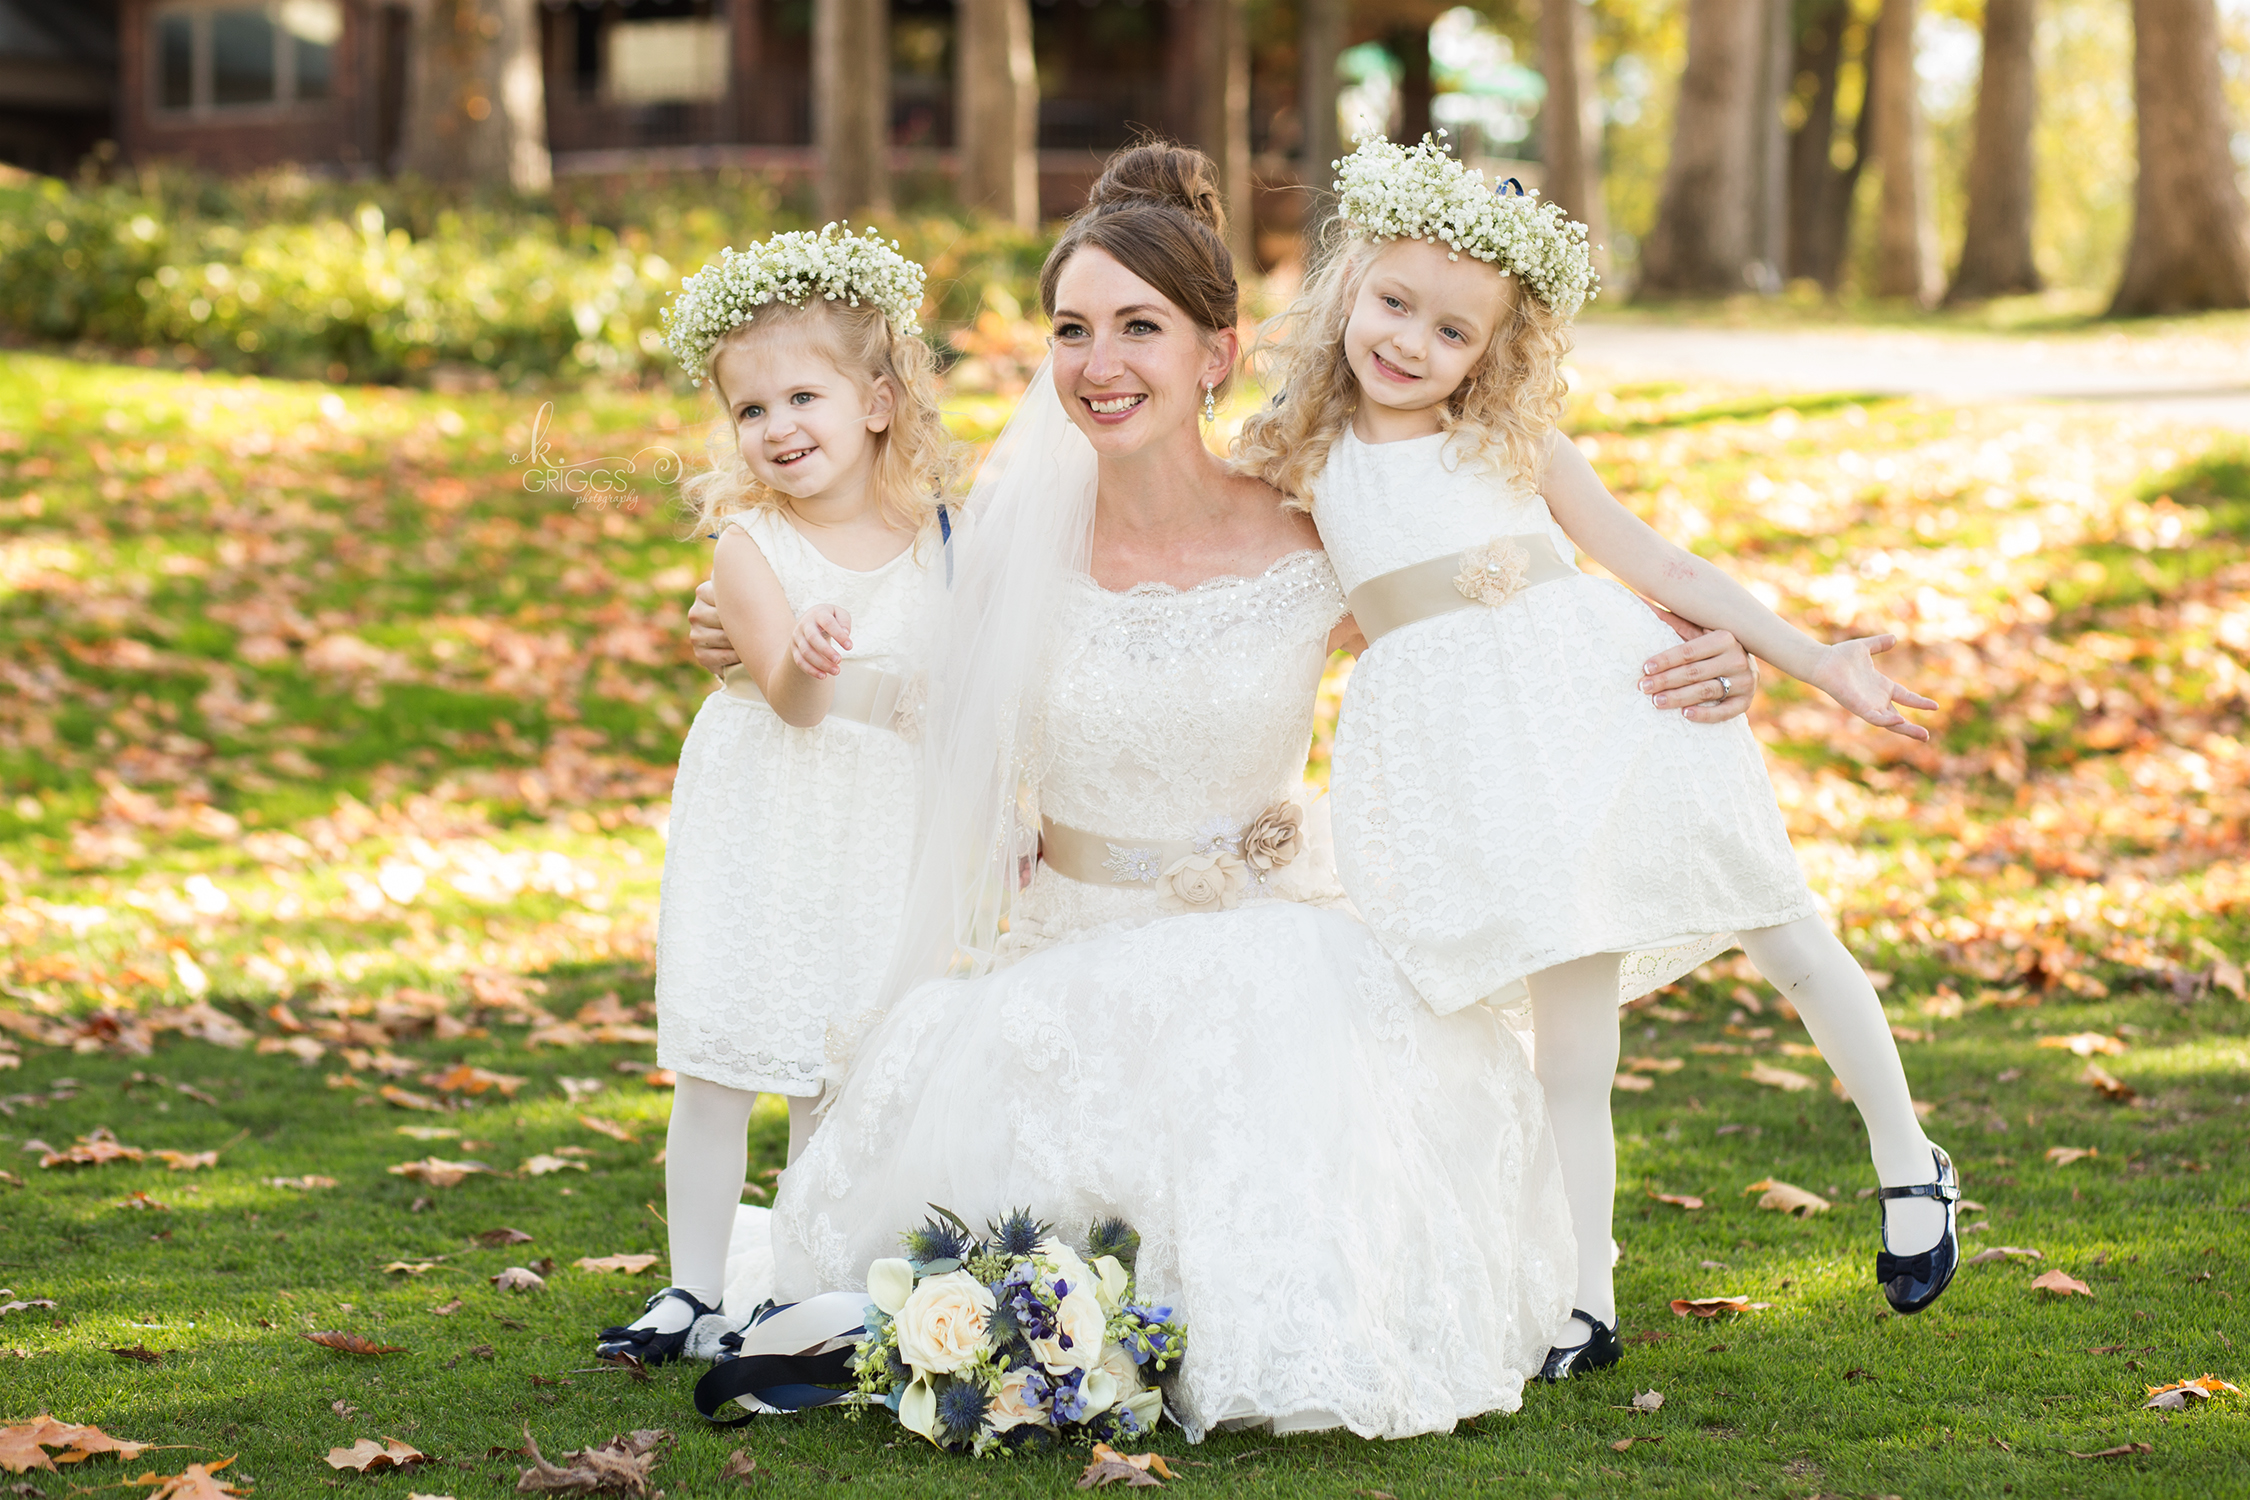 bride kneeling with her 2 flower girls | St. Louis Photographers